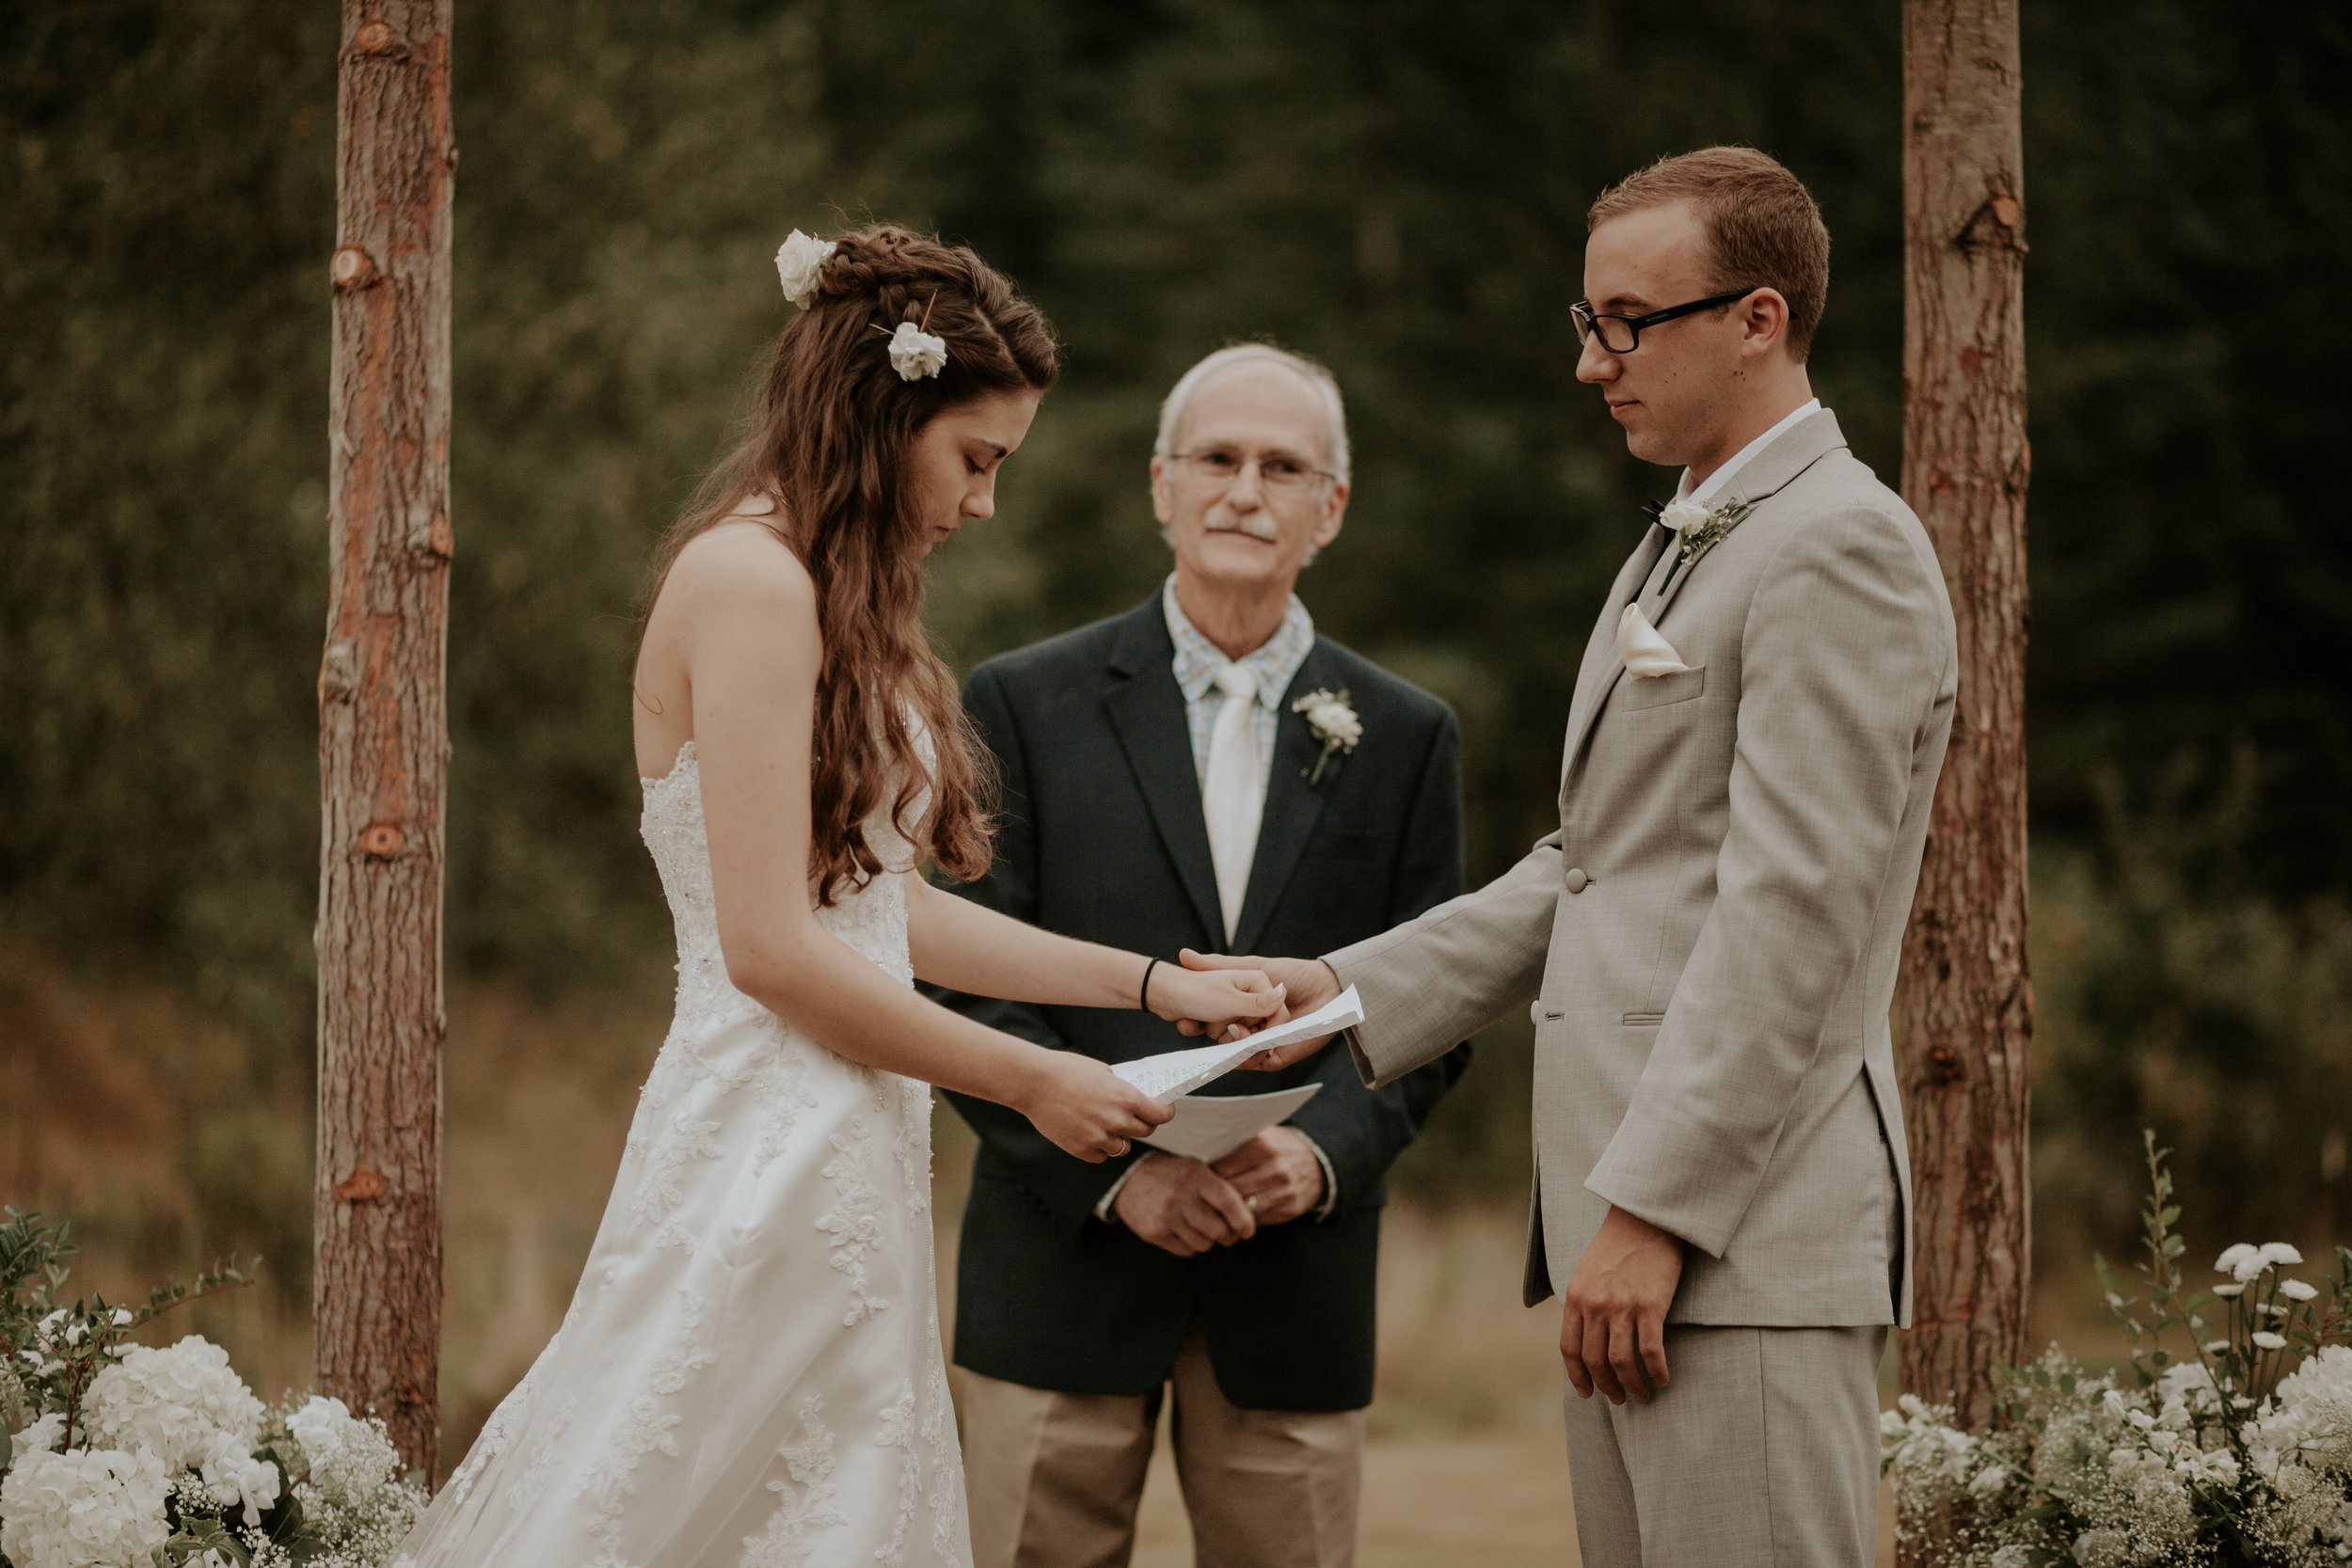 Port-Angeles-elopement-wedding-pnw-olympic-peninsula-photographer-portrait-kayladawnphoto-kayla-dawn-photography-olympic-national-park-71.jpg